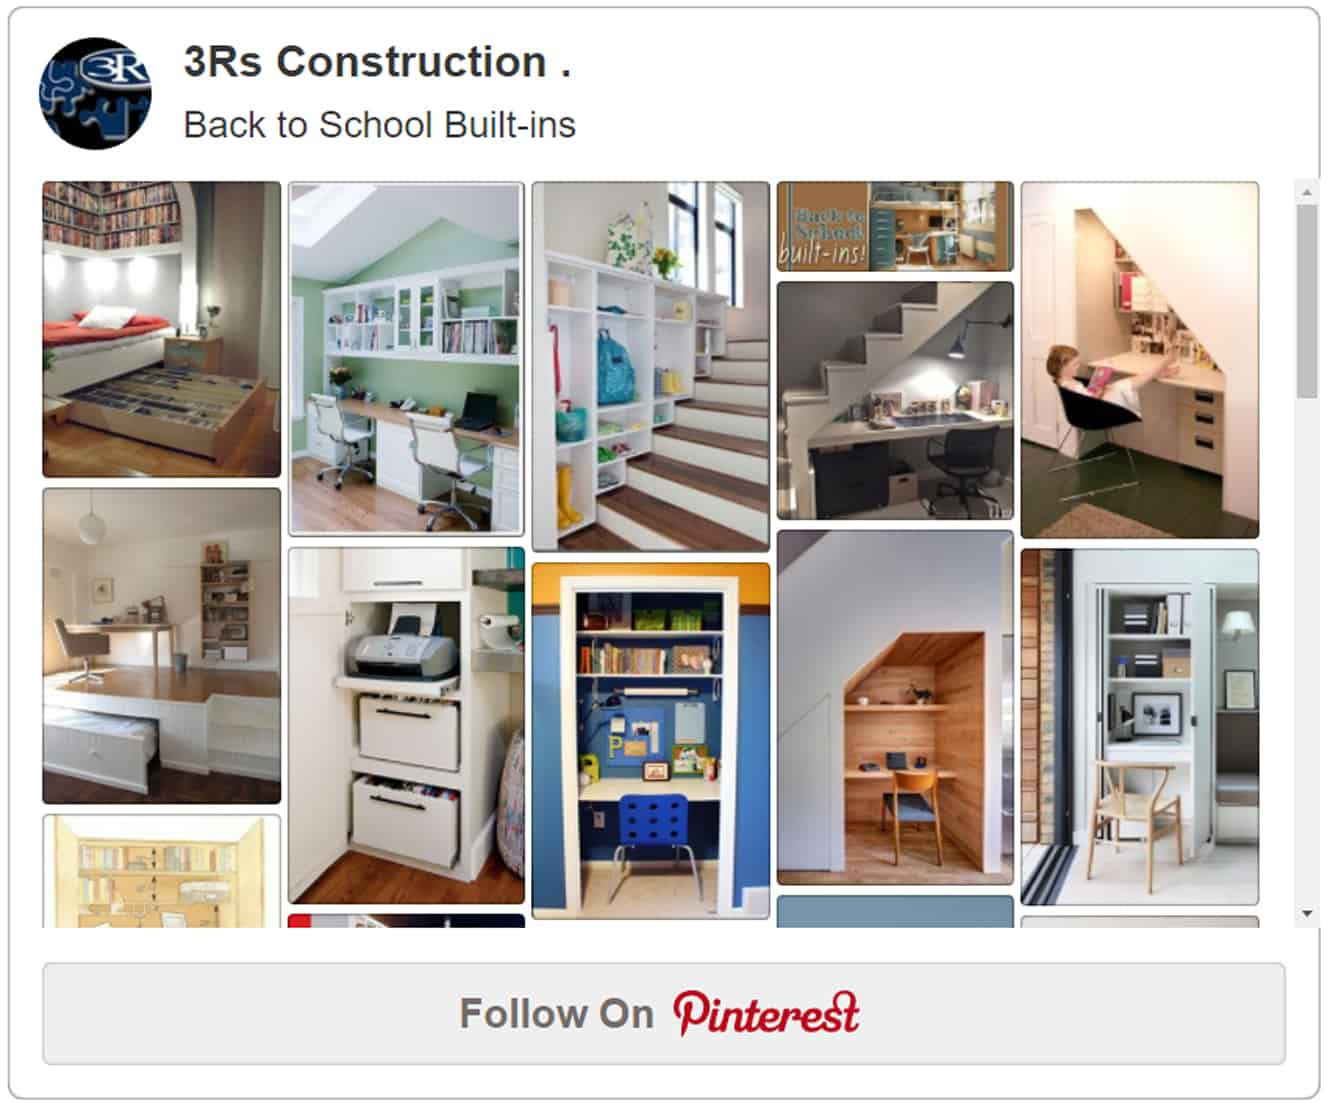 3Rs Construction Pinterest Back to School Built-ins